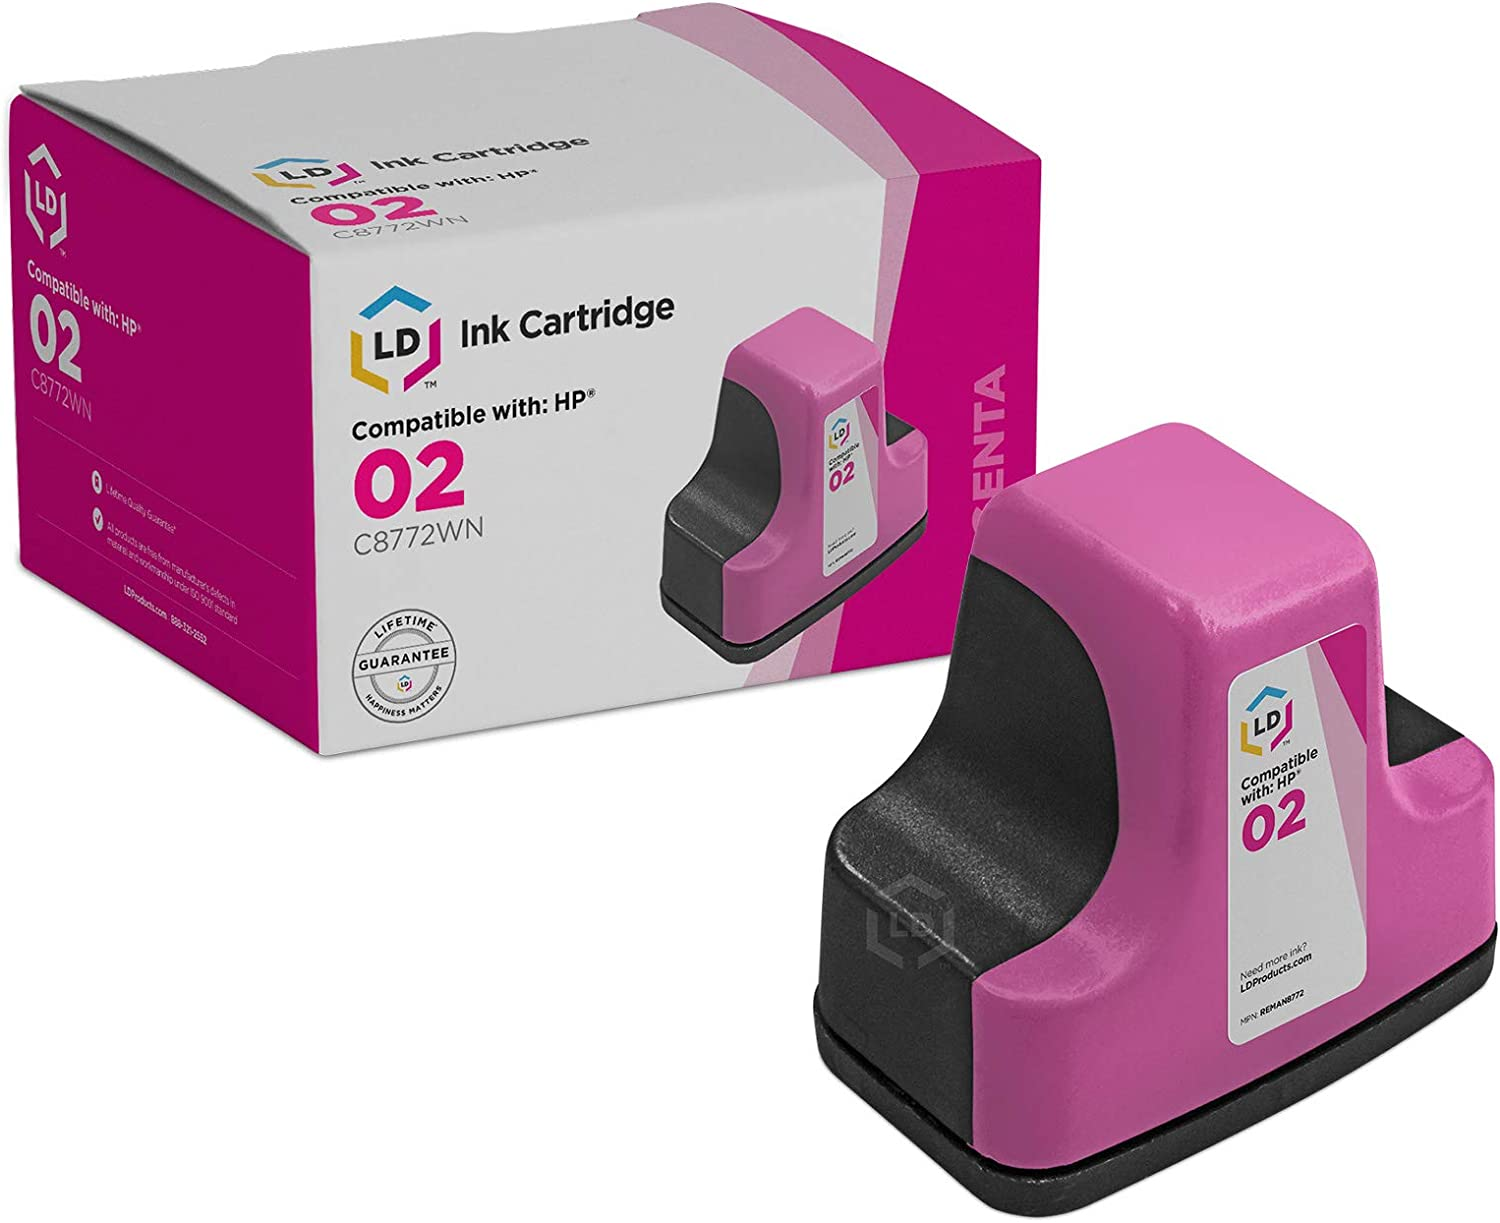 LD Remanufactured Ink Cartridge Replacement for HP 02 C8772WN (Magenta)